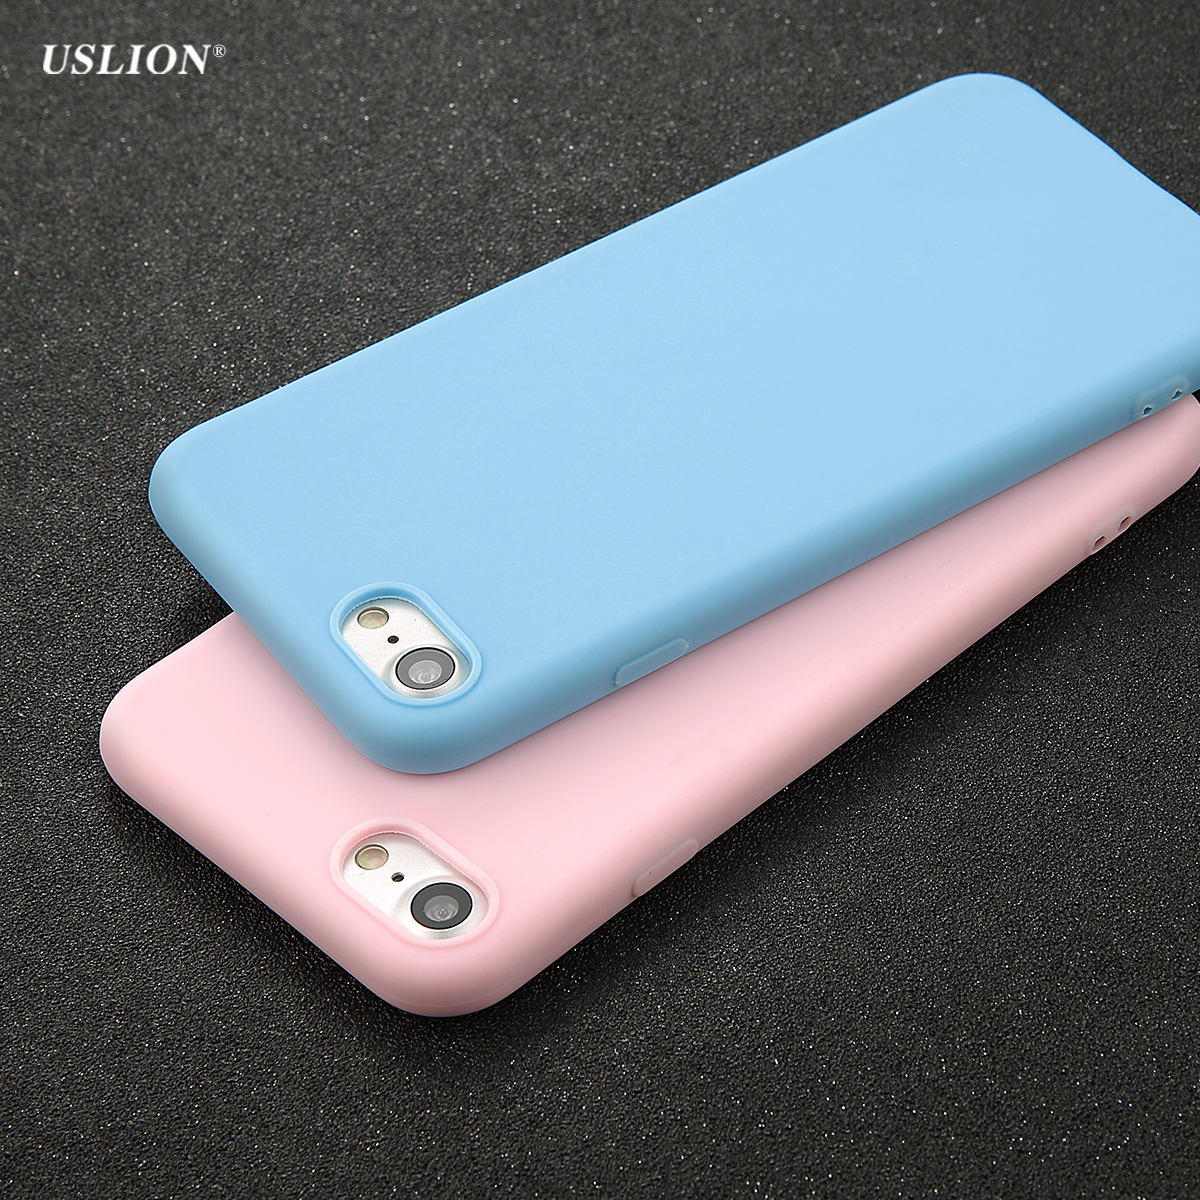 USLION Phone Case For iPhone 7 6 6s 8 X Plus 5 5s SE XR XS Simple Solid Color Ultrathin Soft TPU Cases Candy Color Back Cover baseus guards case tpu tpe cover for iphone 7 red